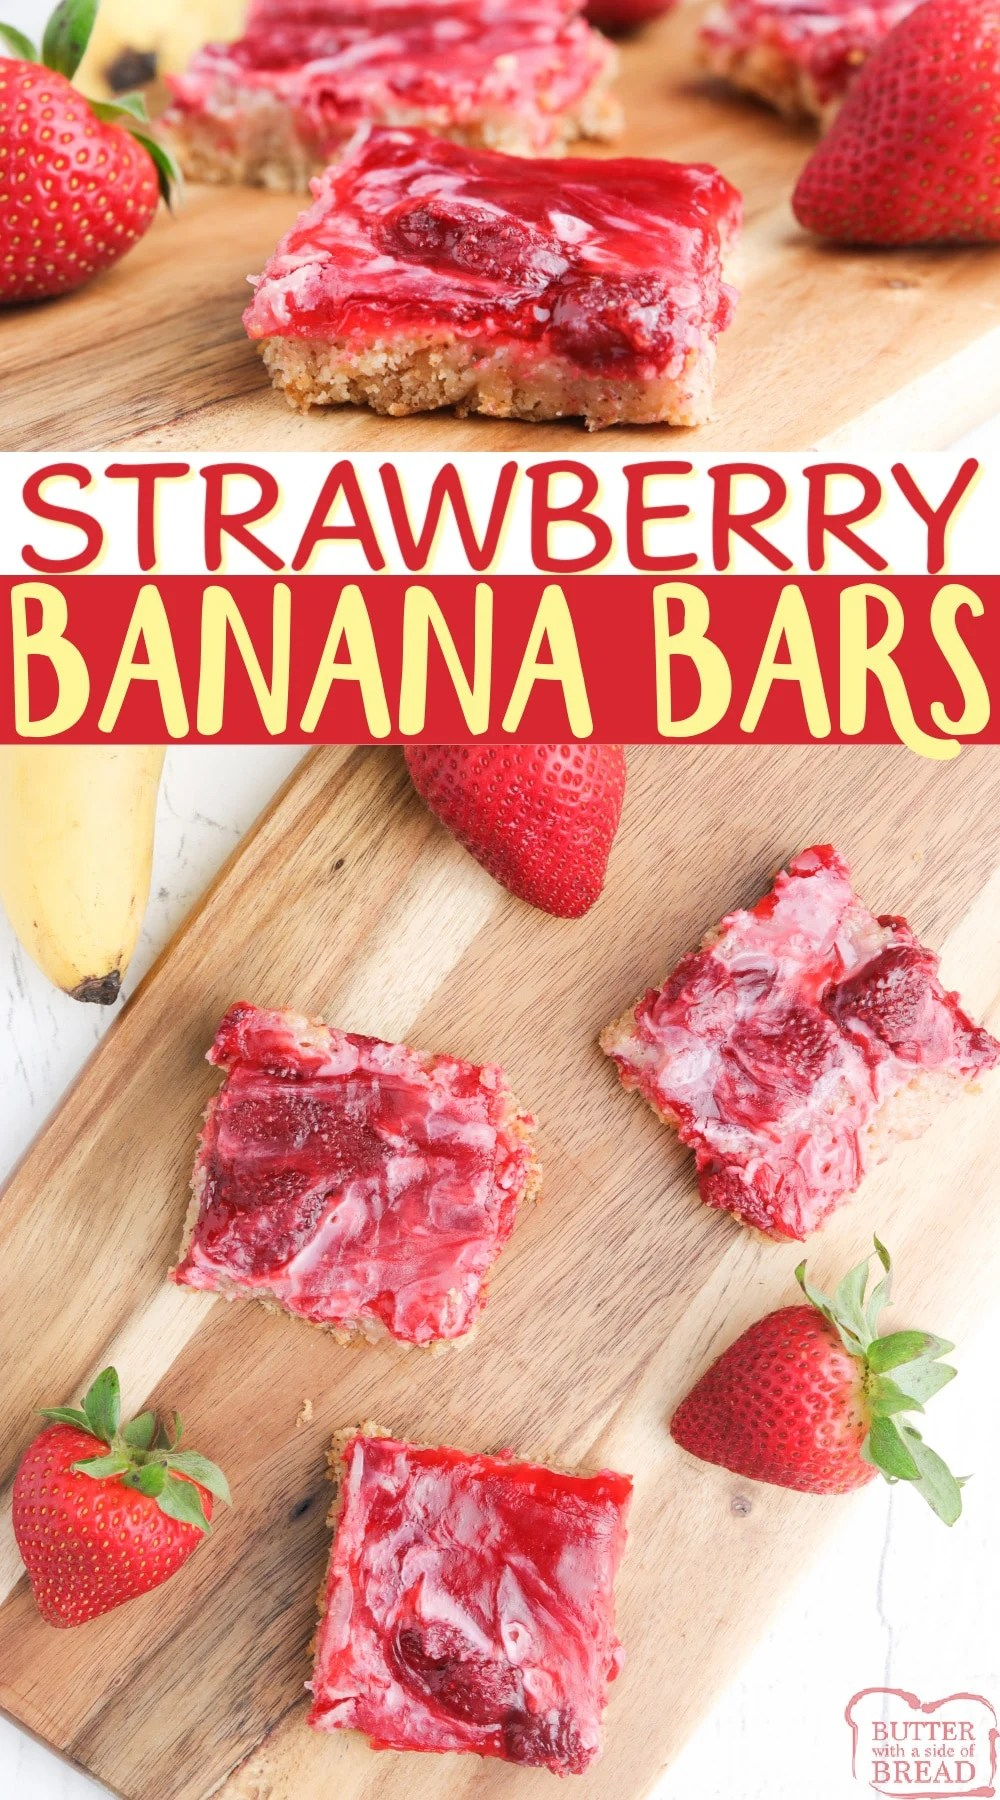 Strawberry Banana Bars made with a banana bread or muffin mix, strawberry pie filling and just three other basic ingredients. Easy banana recipe that is perfect for a snack or dessert!